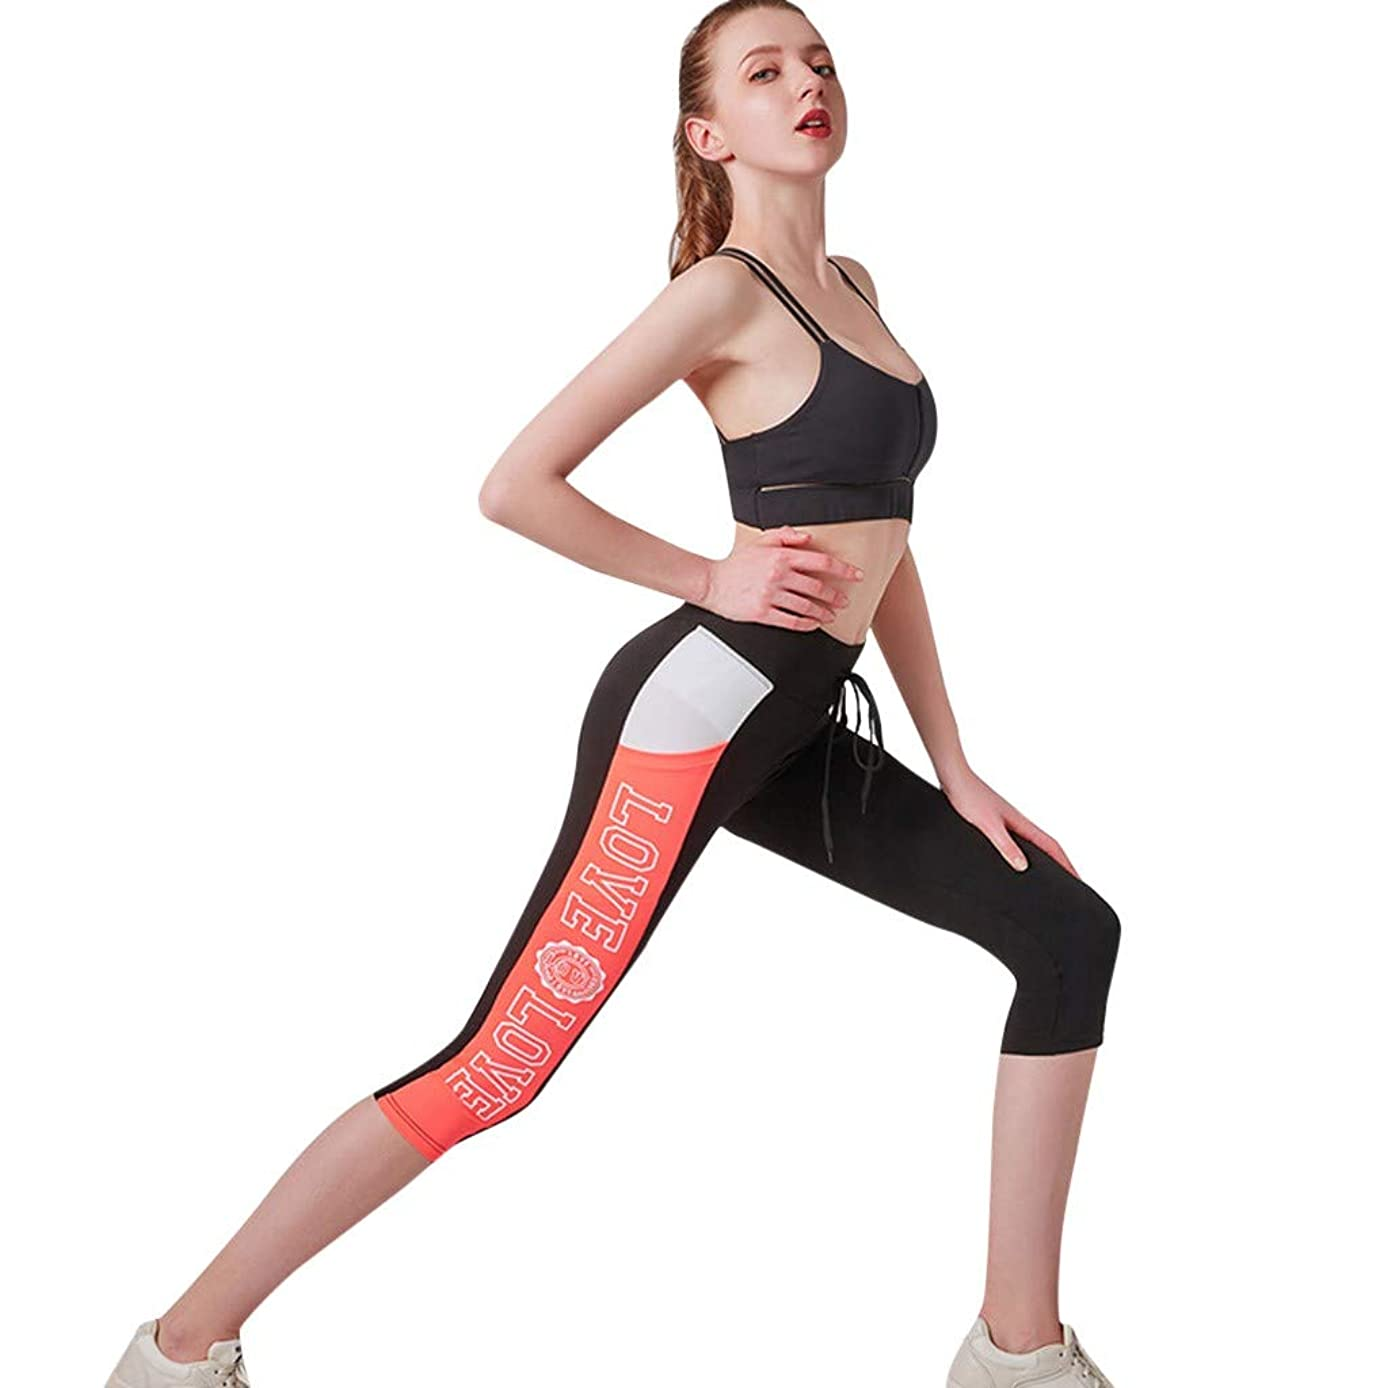 Forthery Womens Yoga Capri Pants Sport Tummy Control Workout Running Tights Jogger Pants Leggings with Side Pocket